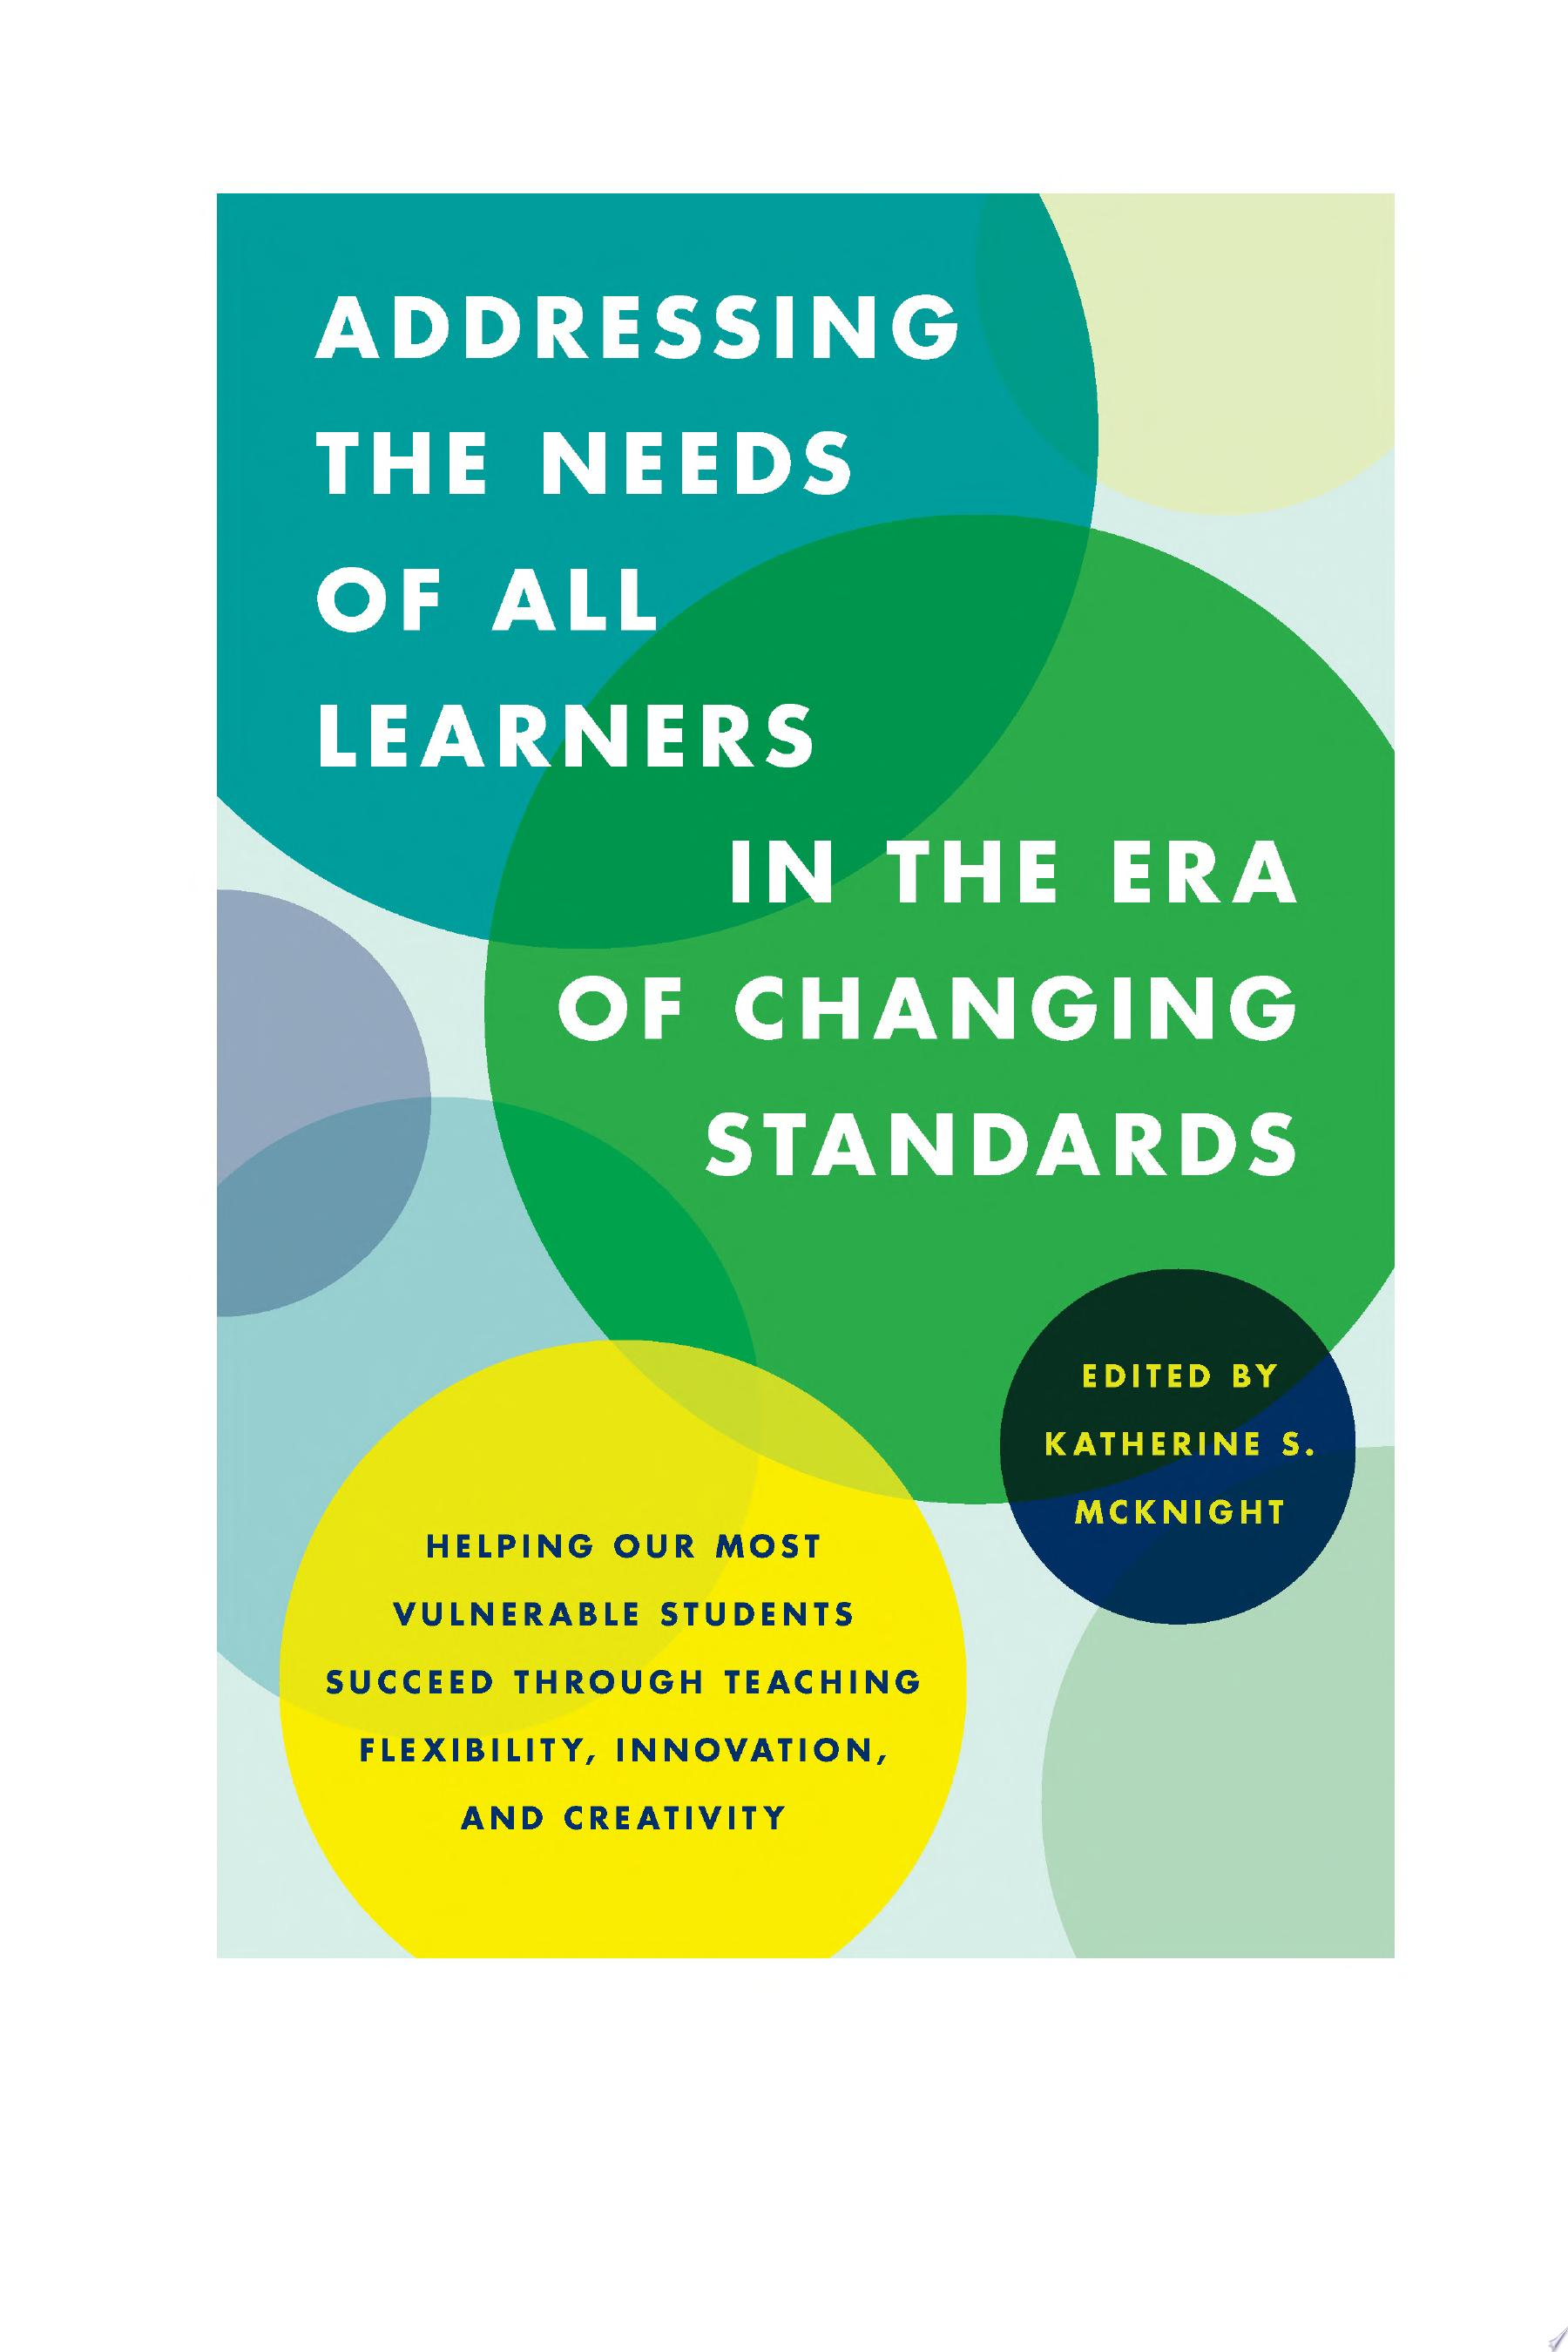 Addressing the Needs of All Learners in the Era of Changing Standards